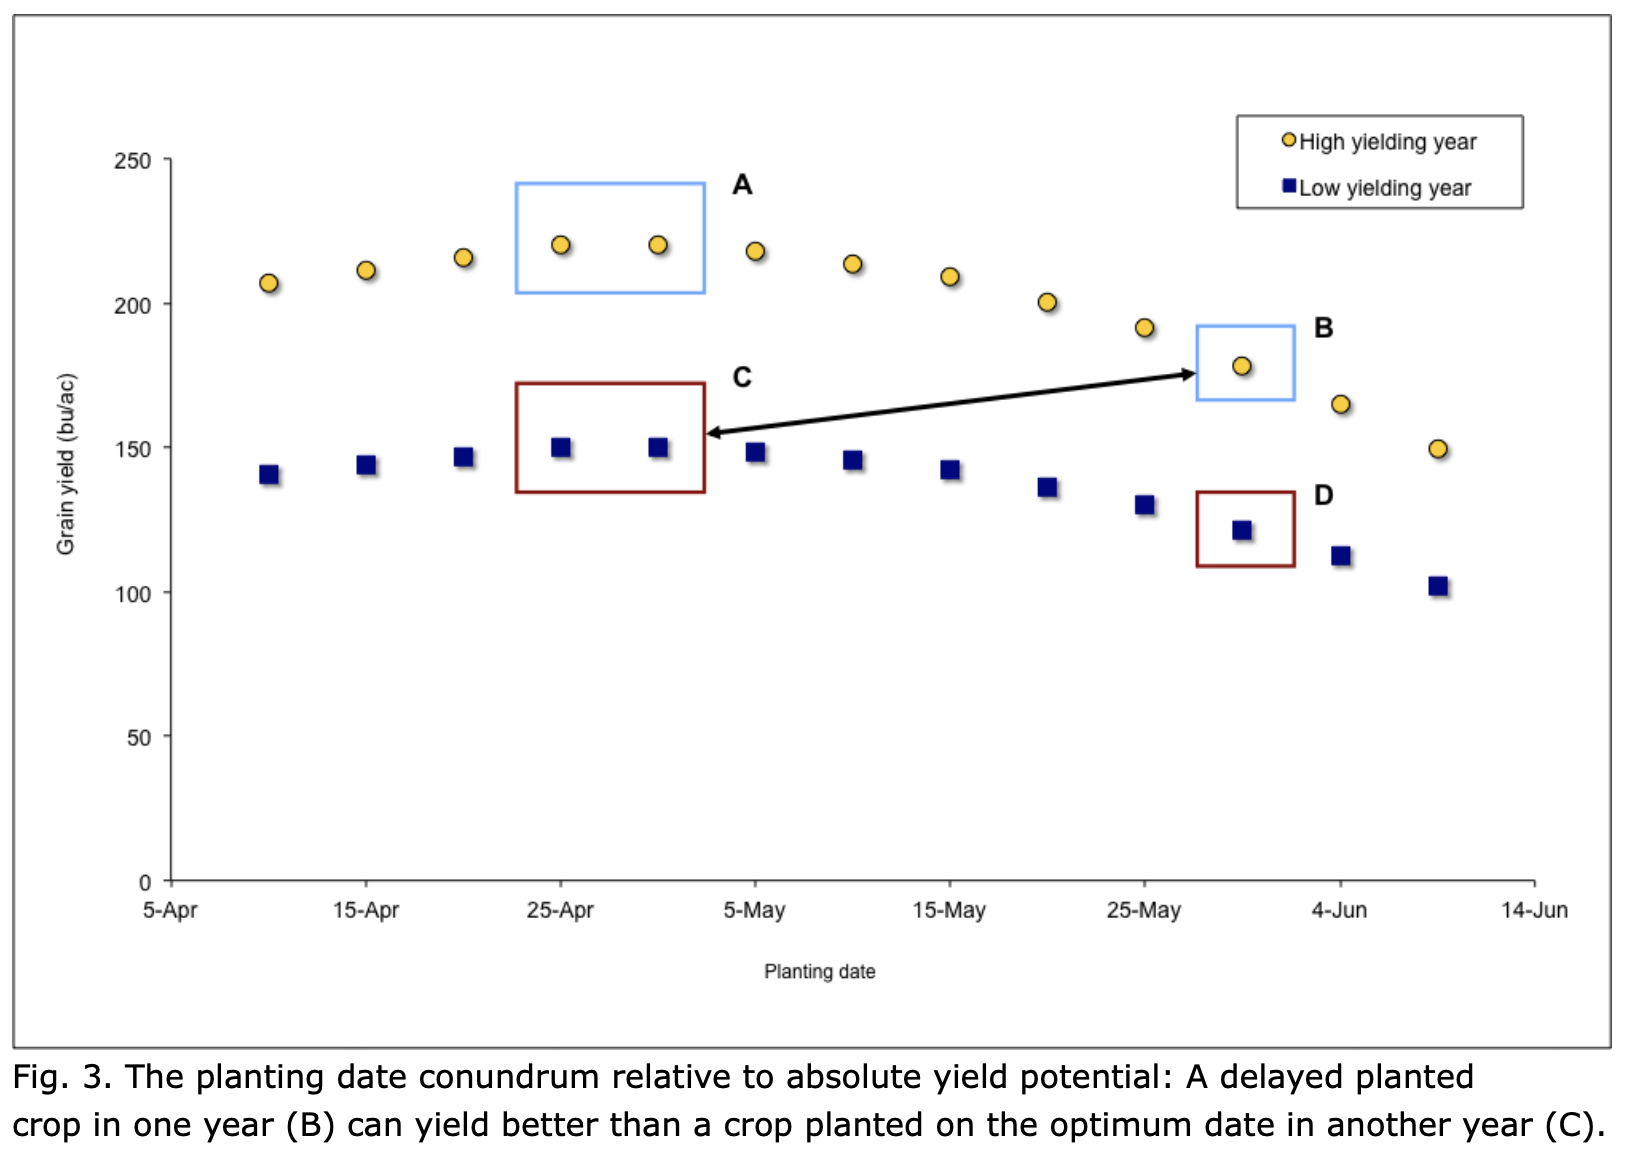 Planting date conundrum chart.png